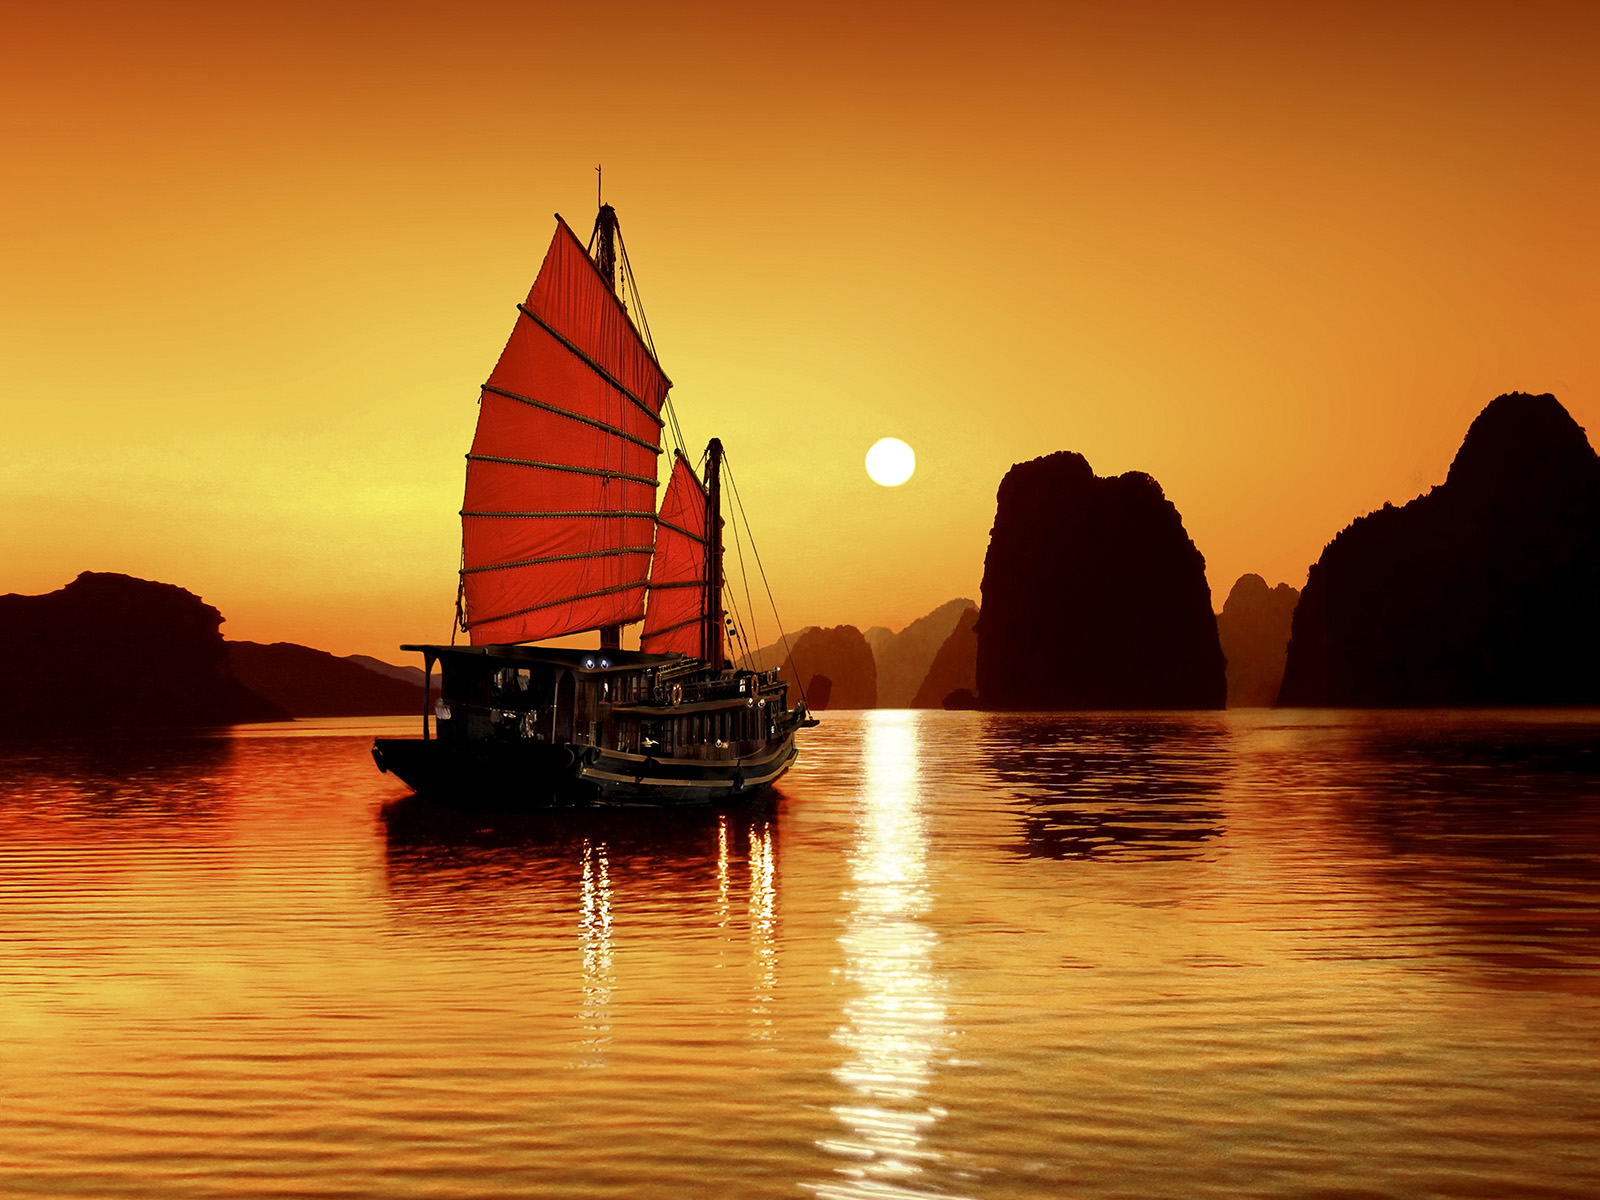 Tour Hanoi - Ninh Binh - Halong Bay 6 days